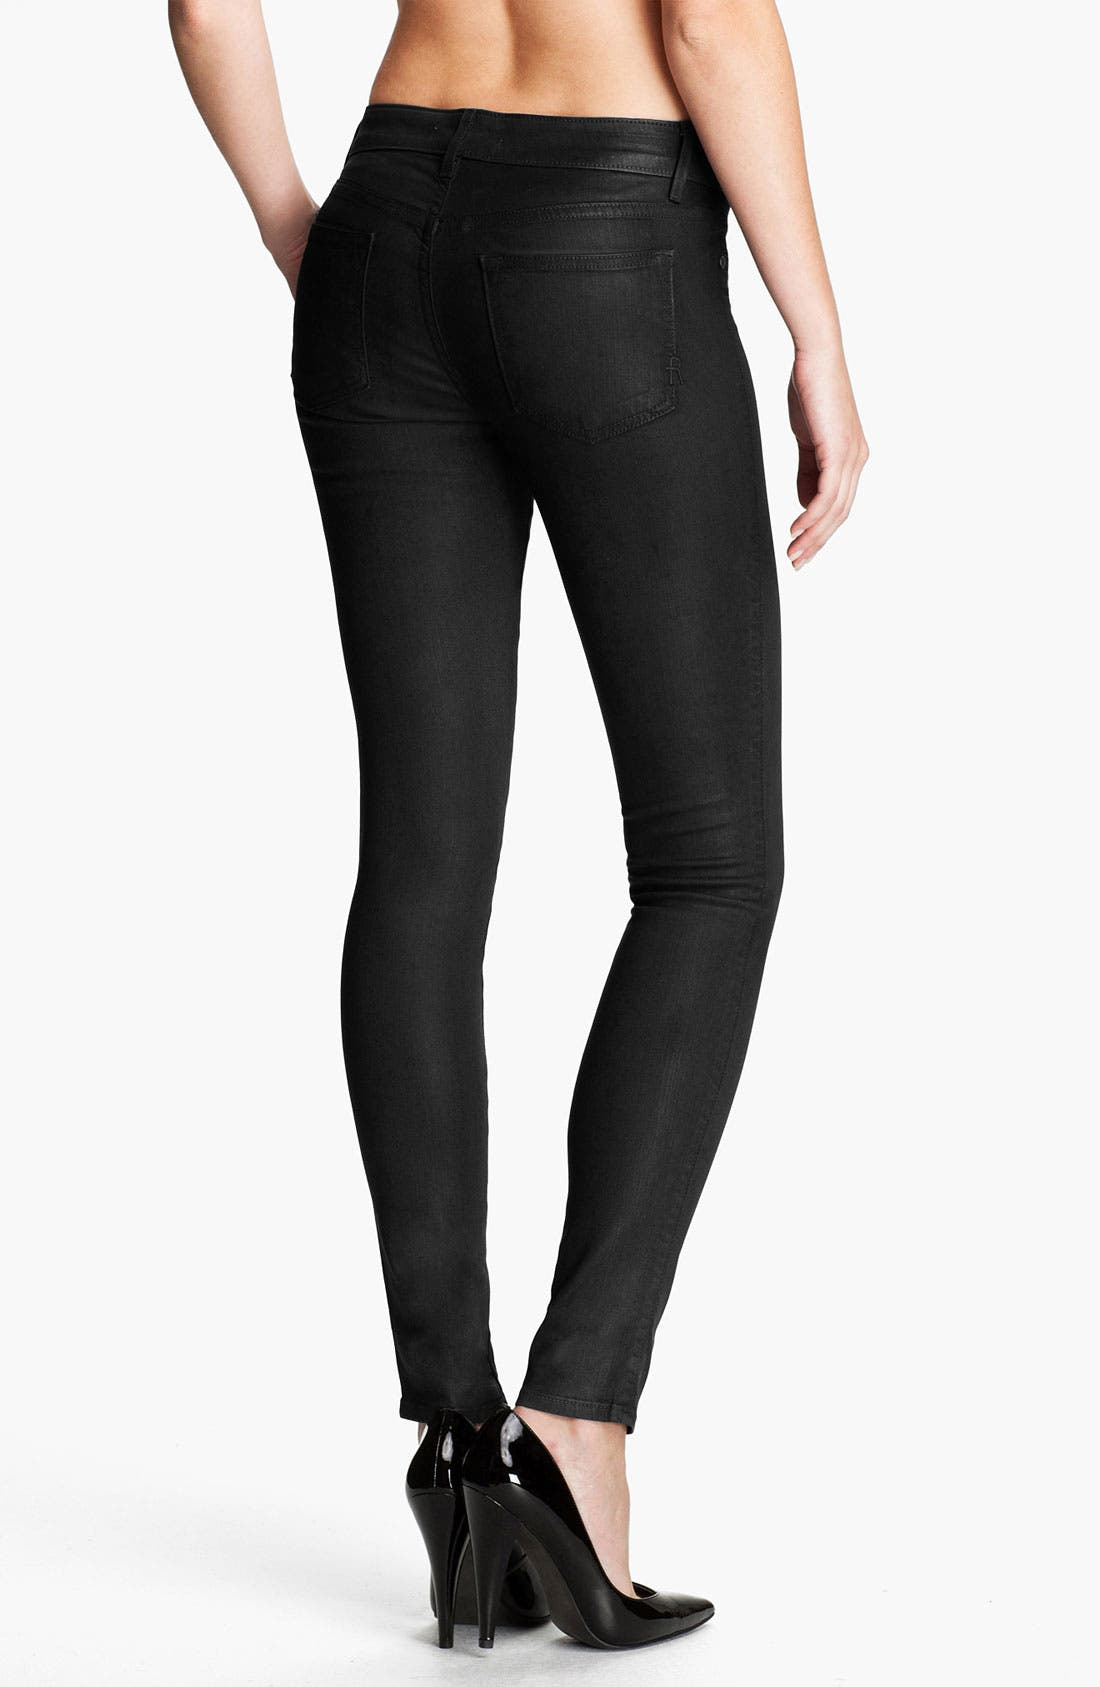 Alternate Image 2  - Rich & Skinny 'Legacy Leather' Faux Leather Skinny Jeans (Tar)